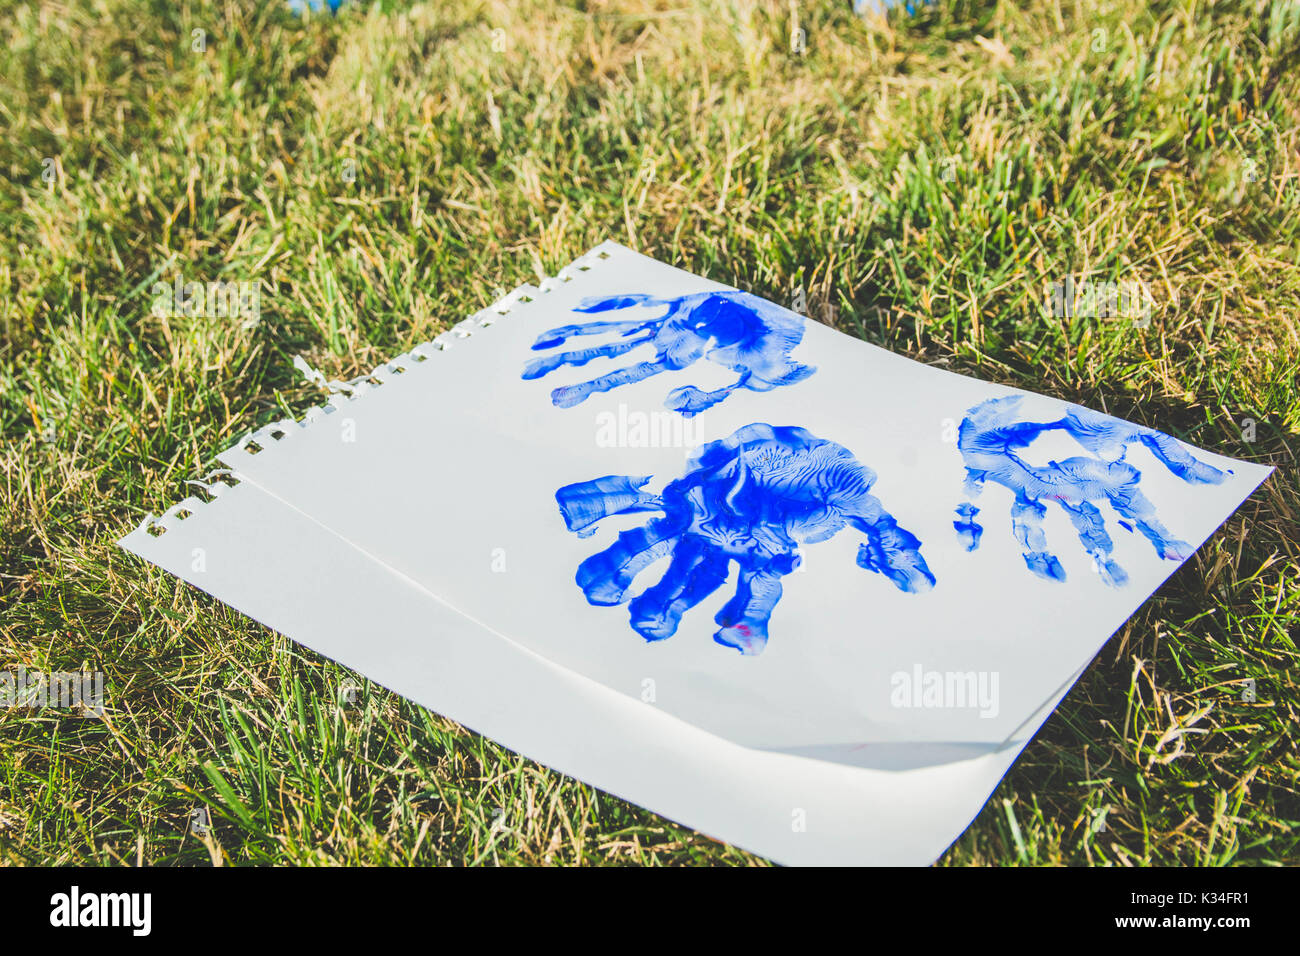 A child's hand prints in blue paint on paper. - Stock Image